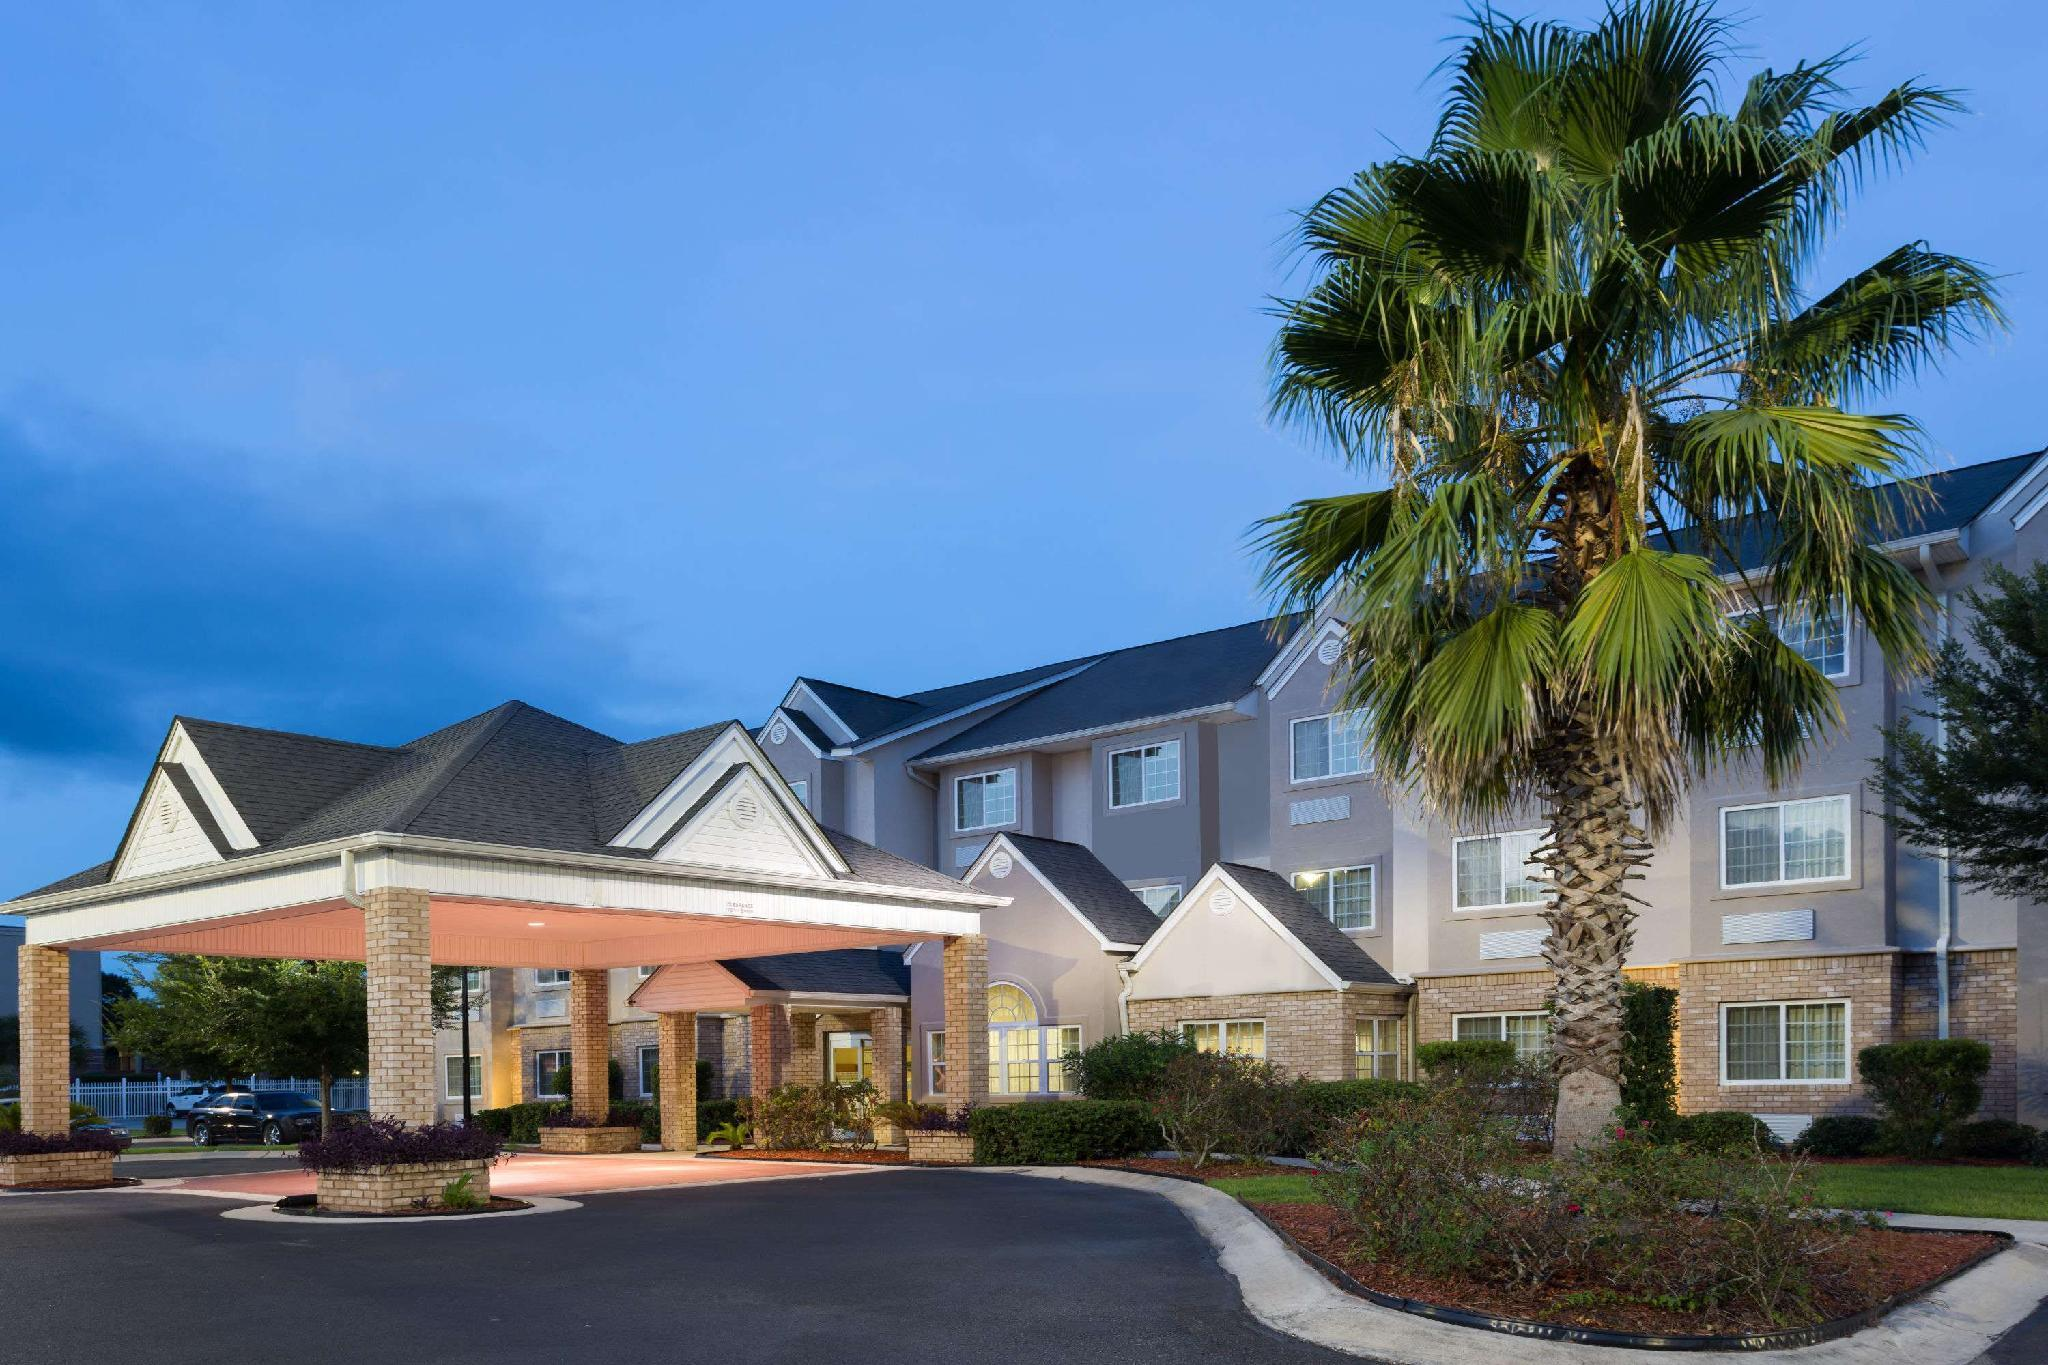 Microtel Inn And Suites By Wyndham Kingsland